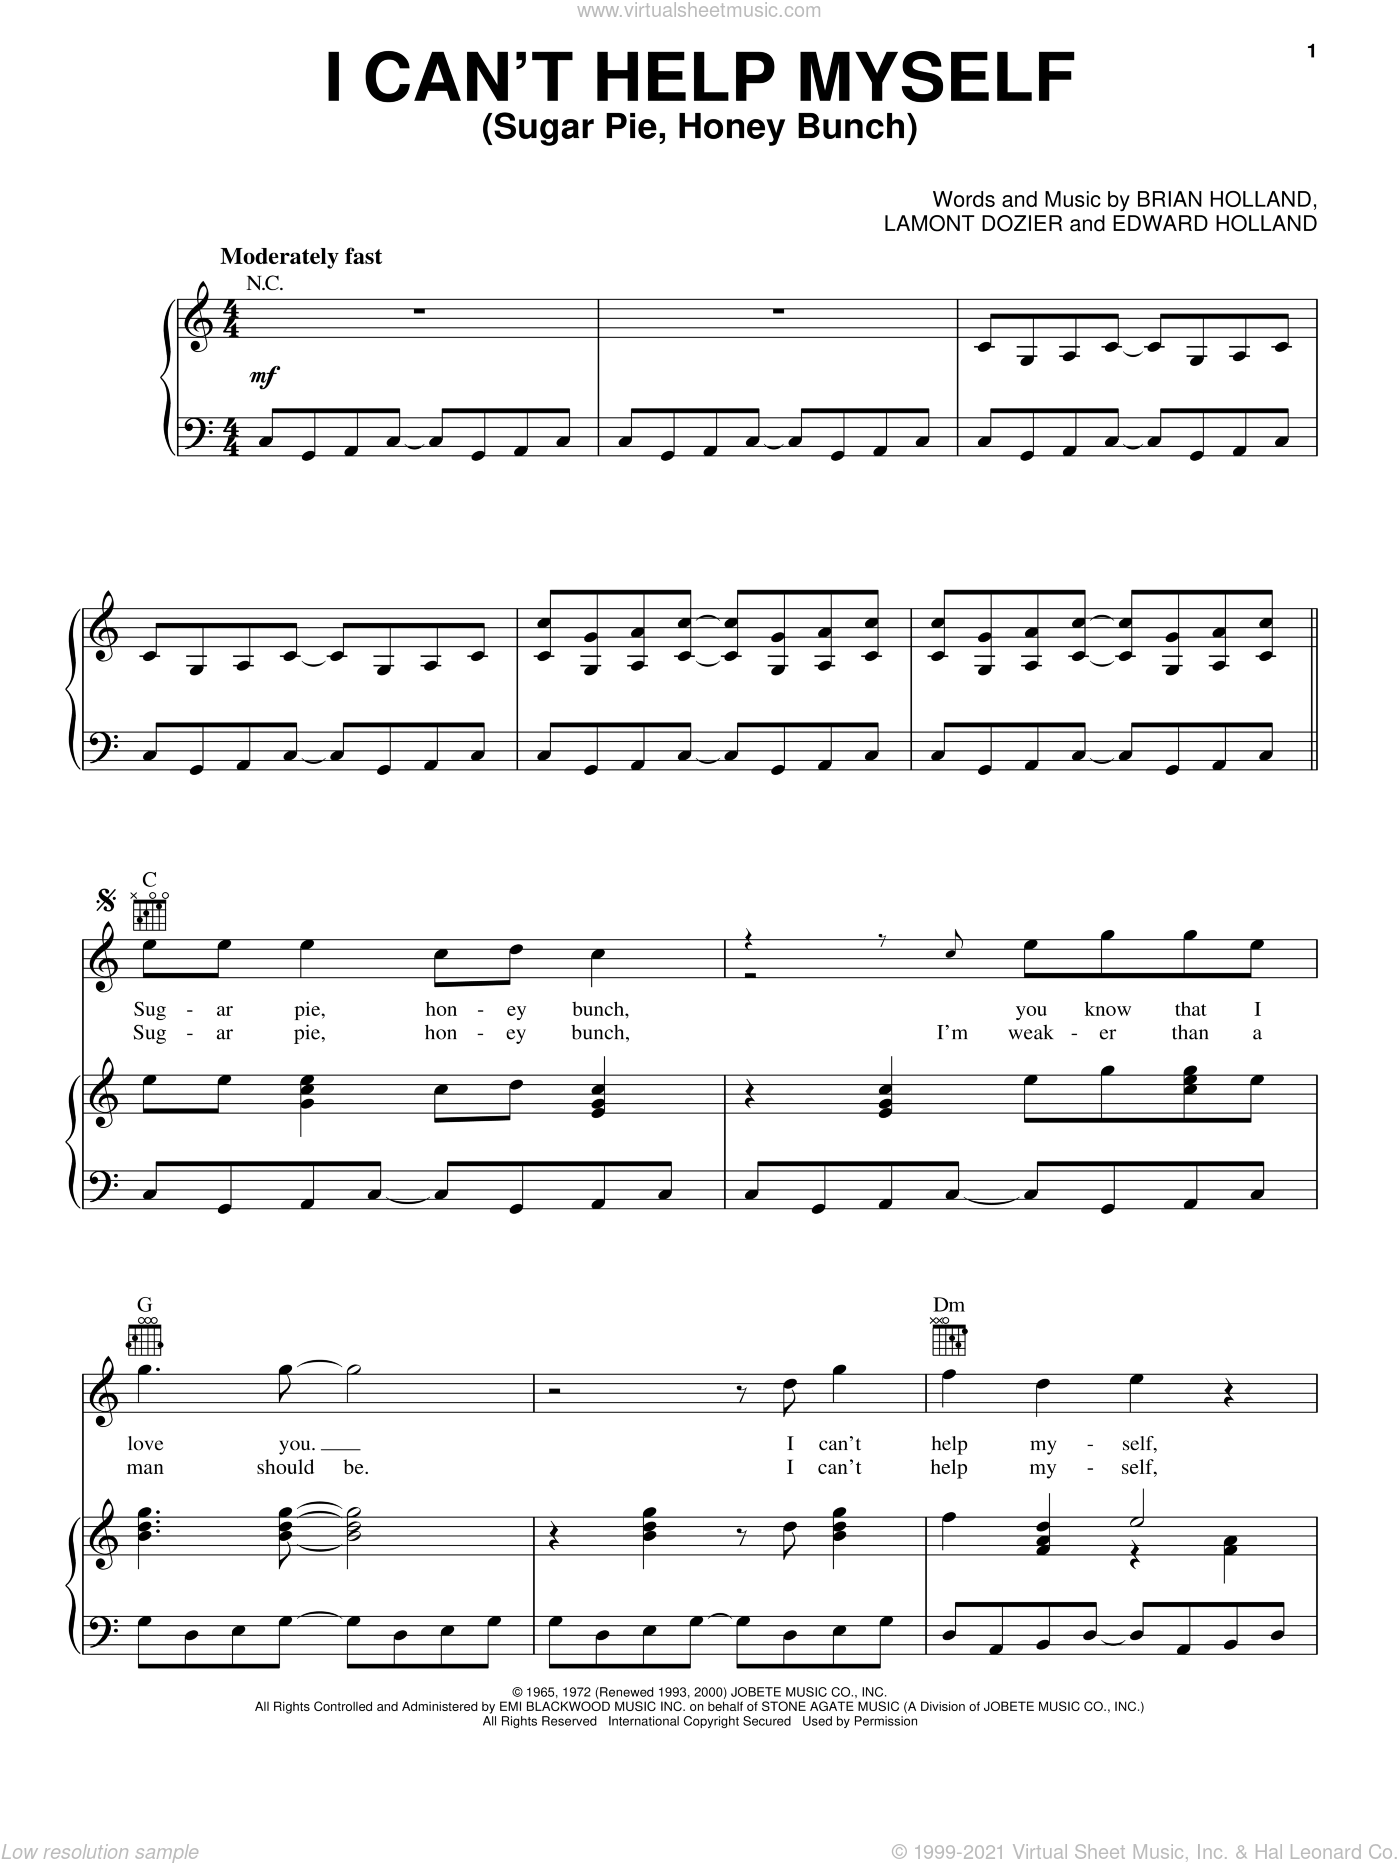 I Can't Help Myself (Sugar Pie, Honey Bunch) sheet music for voice, piano or guitar by The Four Tops, Brian Holland, Eddie Holland and Lamont Dozier, intermediate skill level